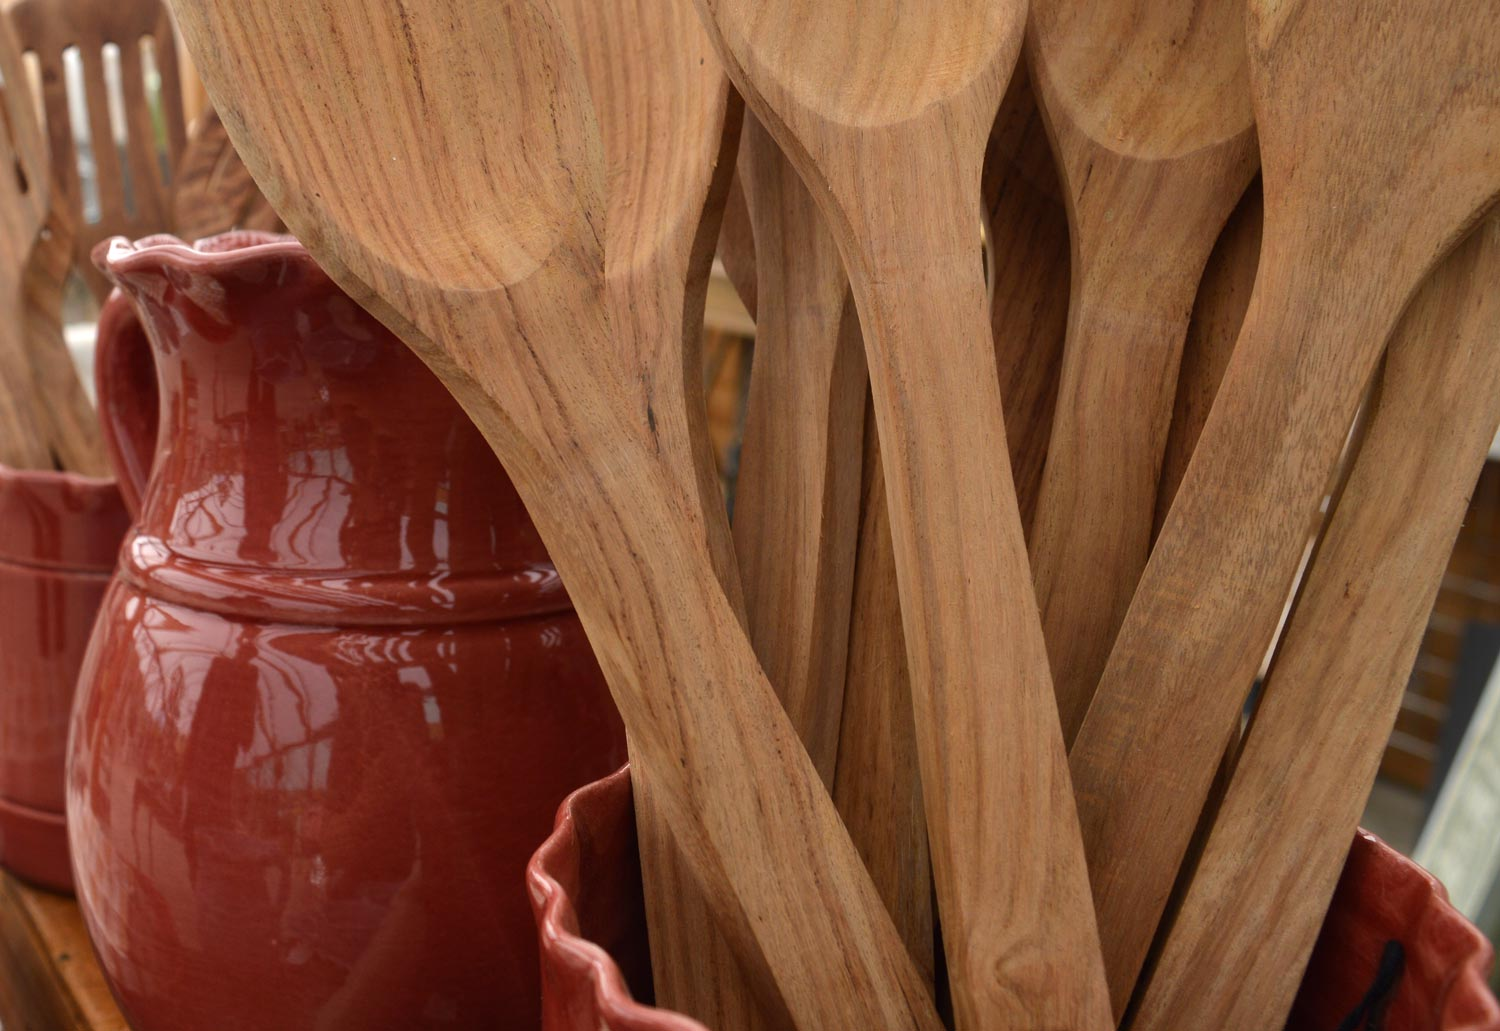 Wooden spoons in a red vase